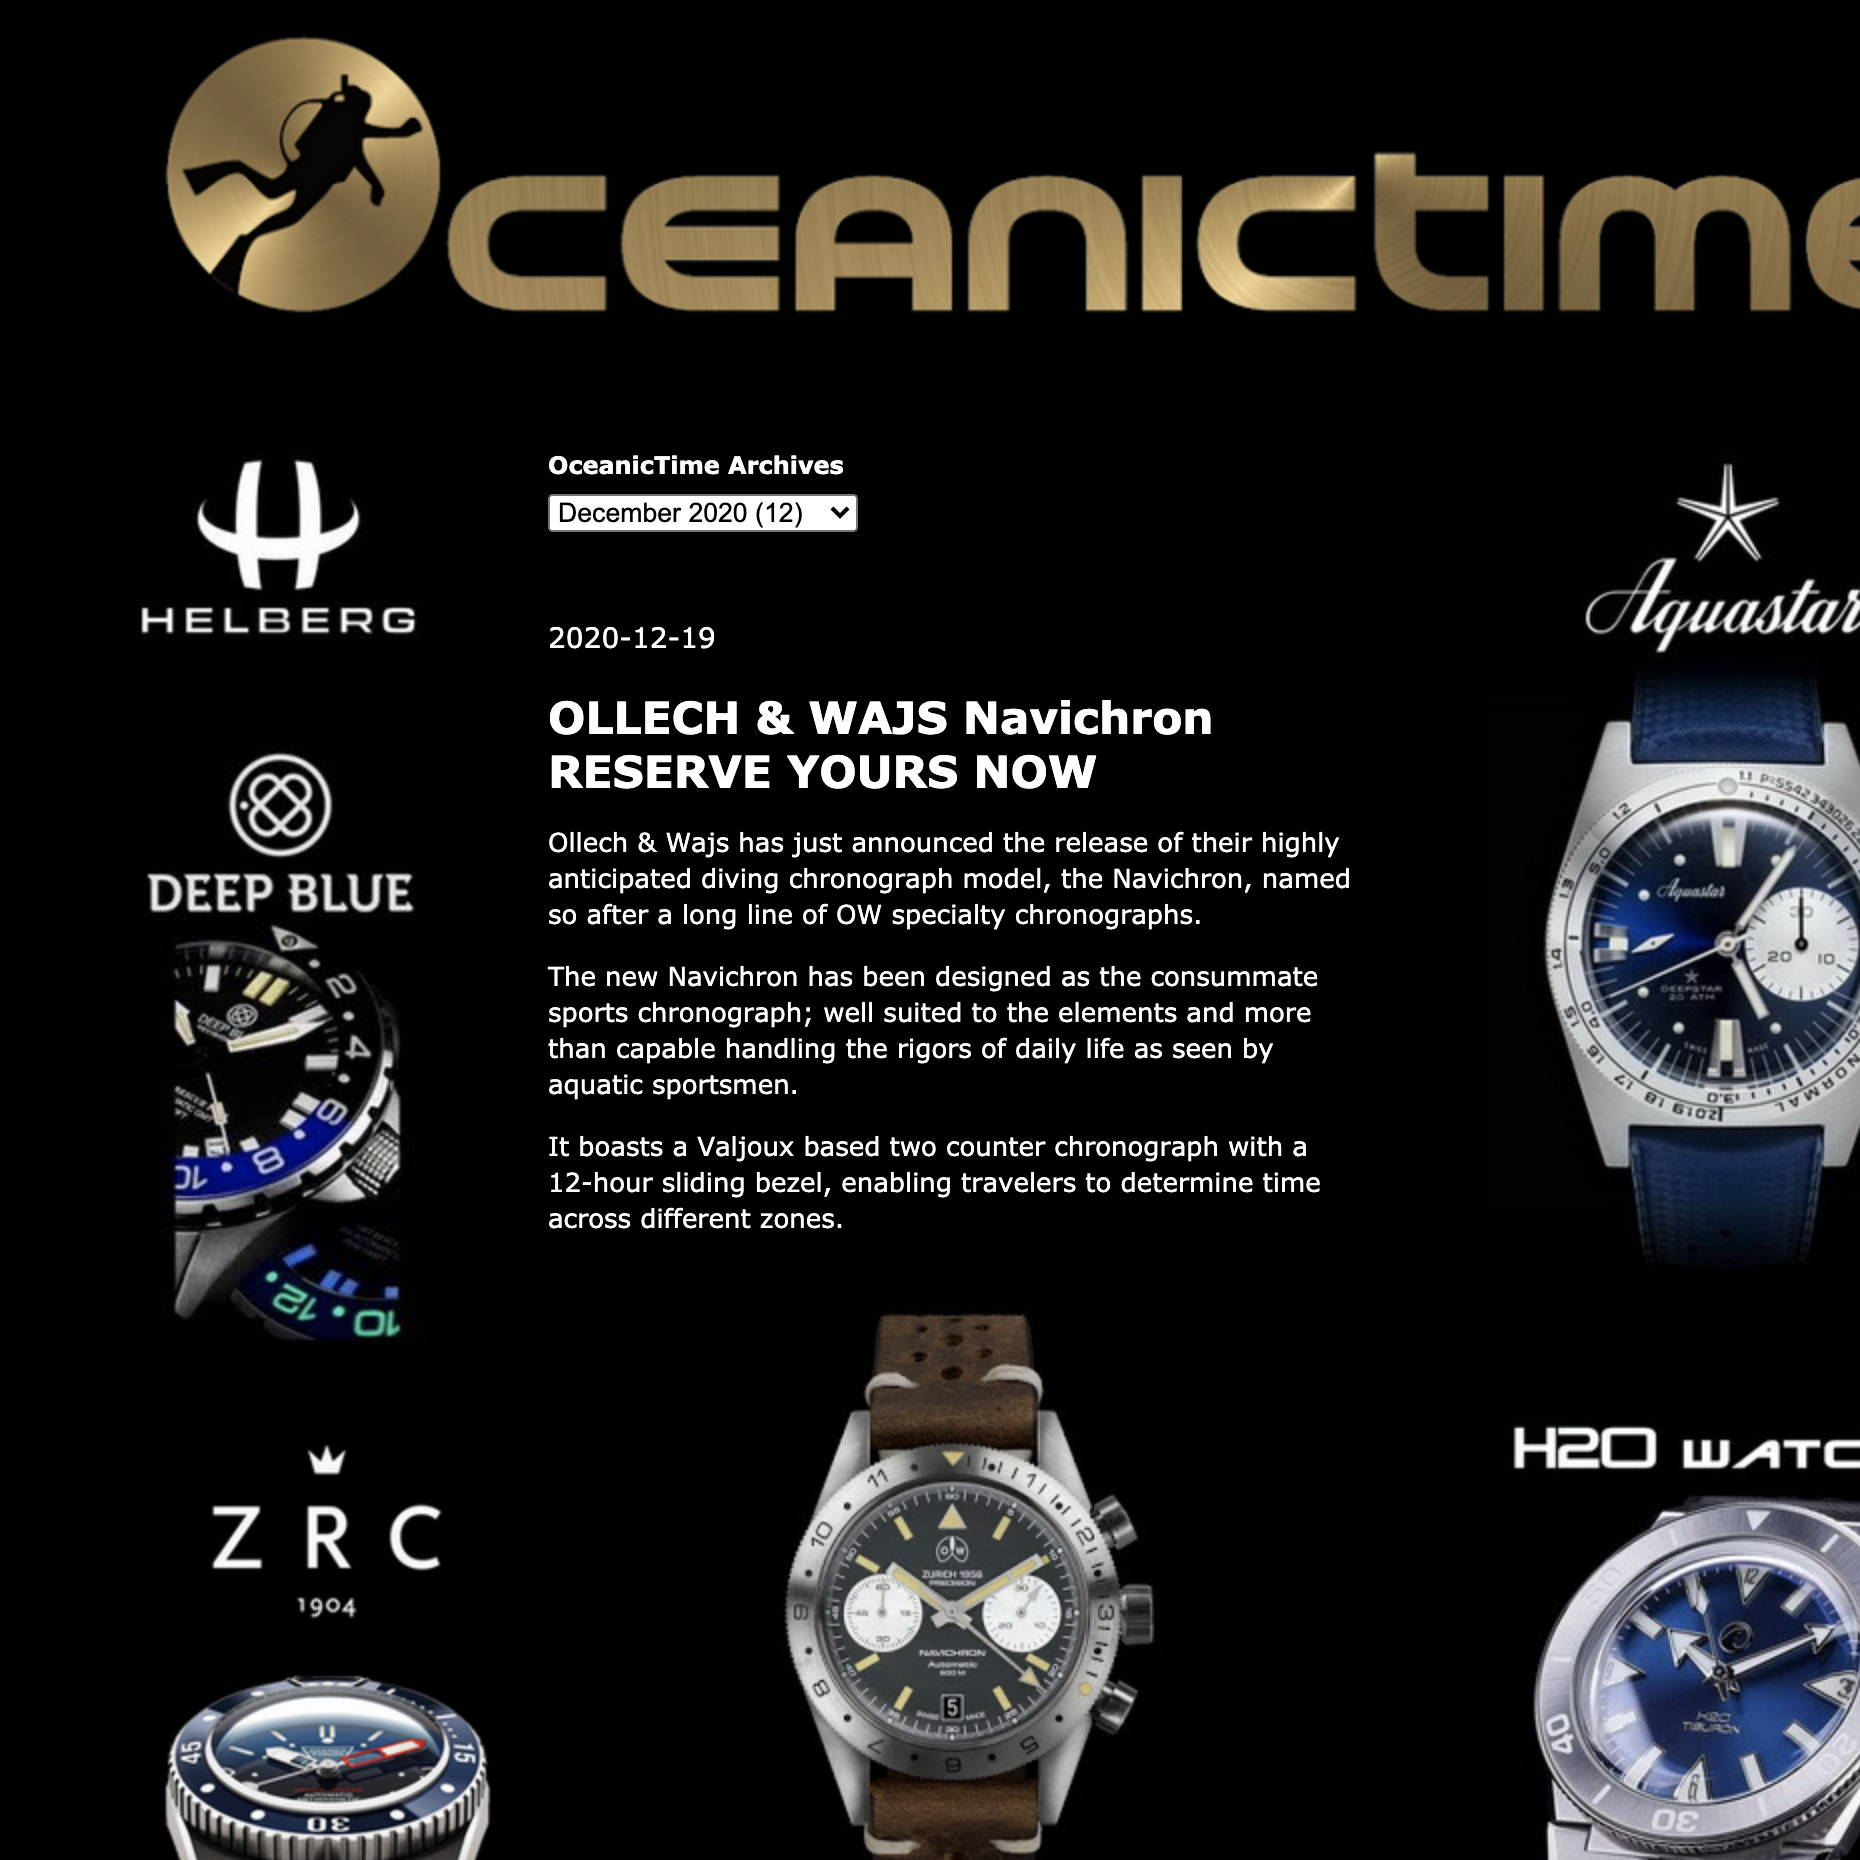 OceanicTime OLLECH & WAJS Navichron RESERVE YOURS NOW